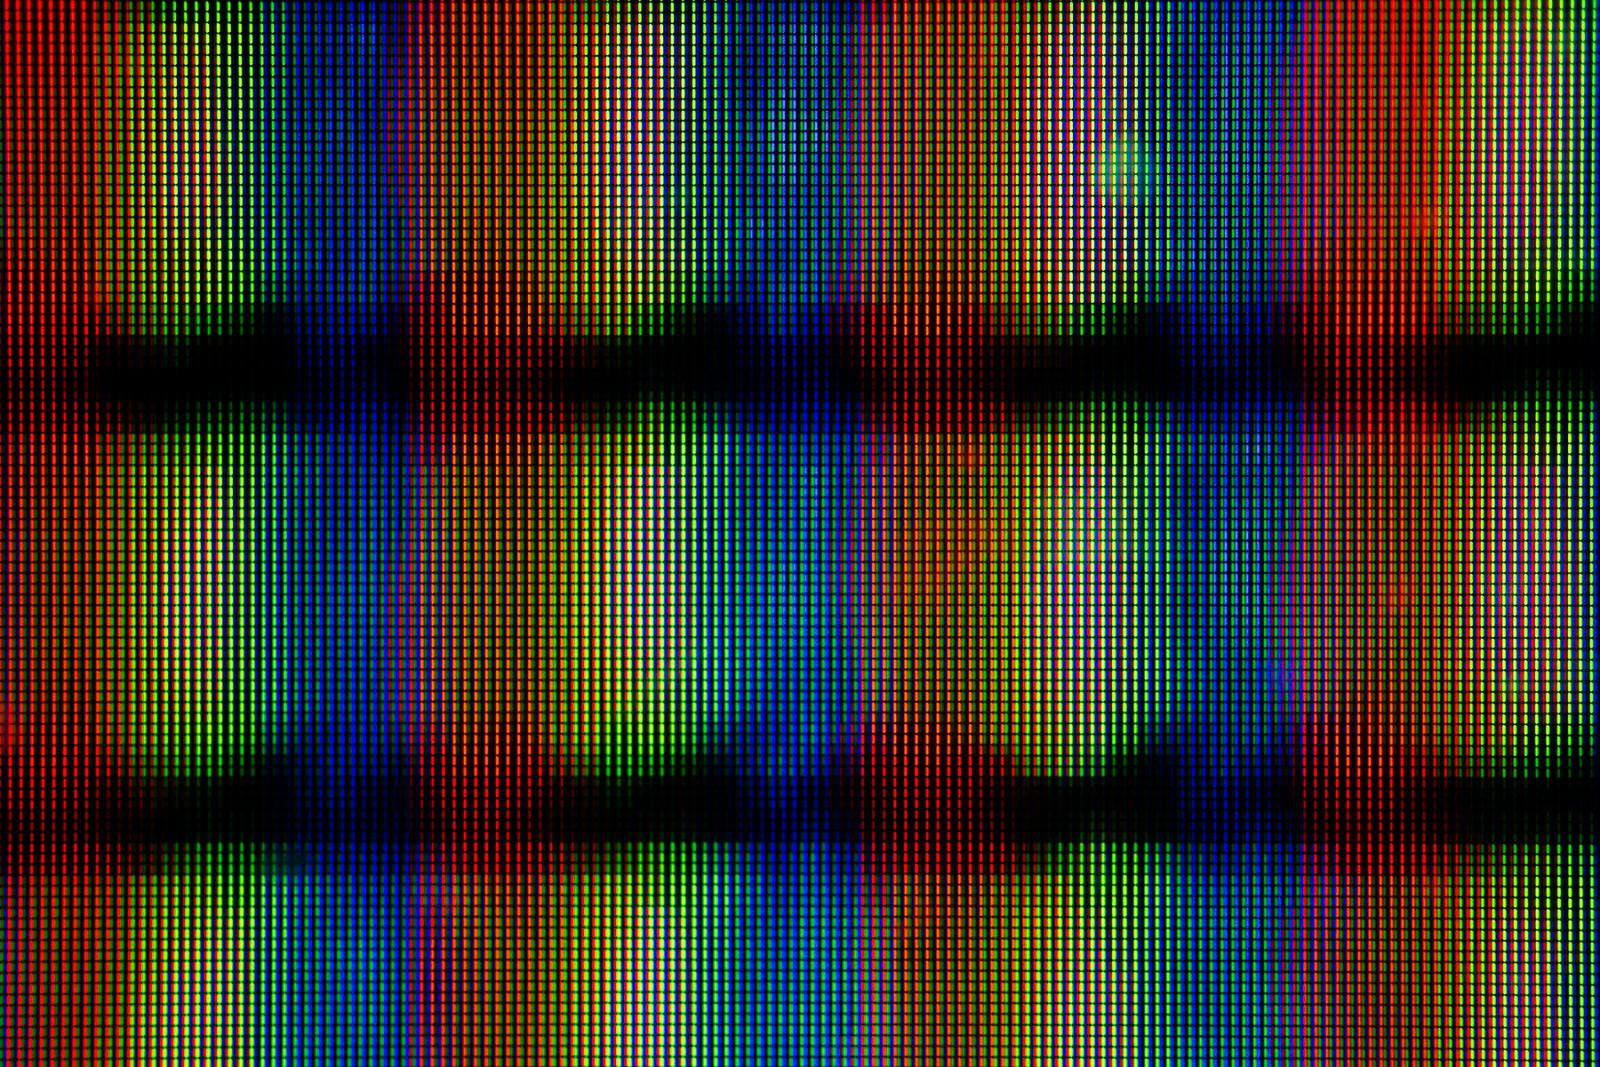 RGB Pixel Field Three.